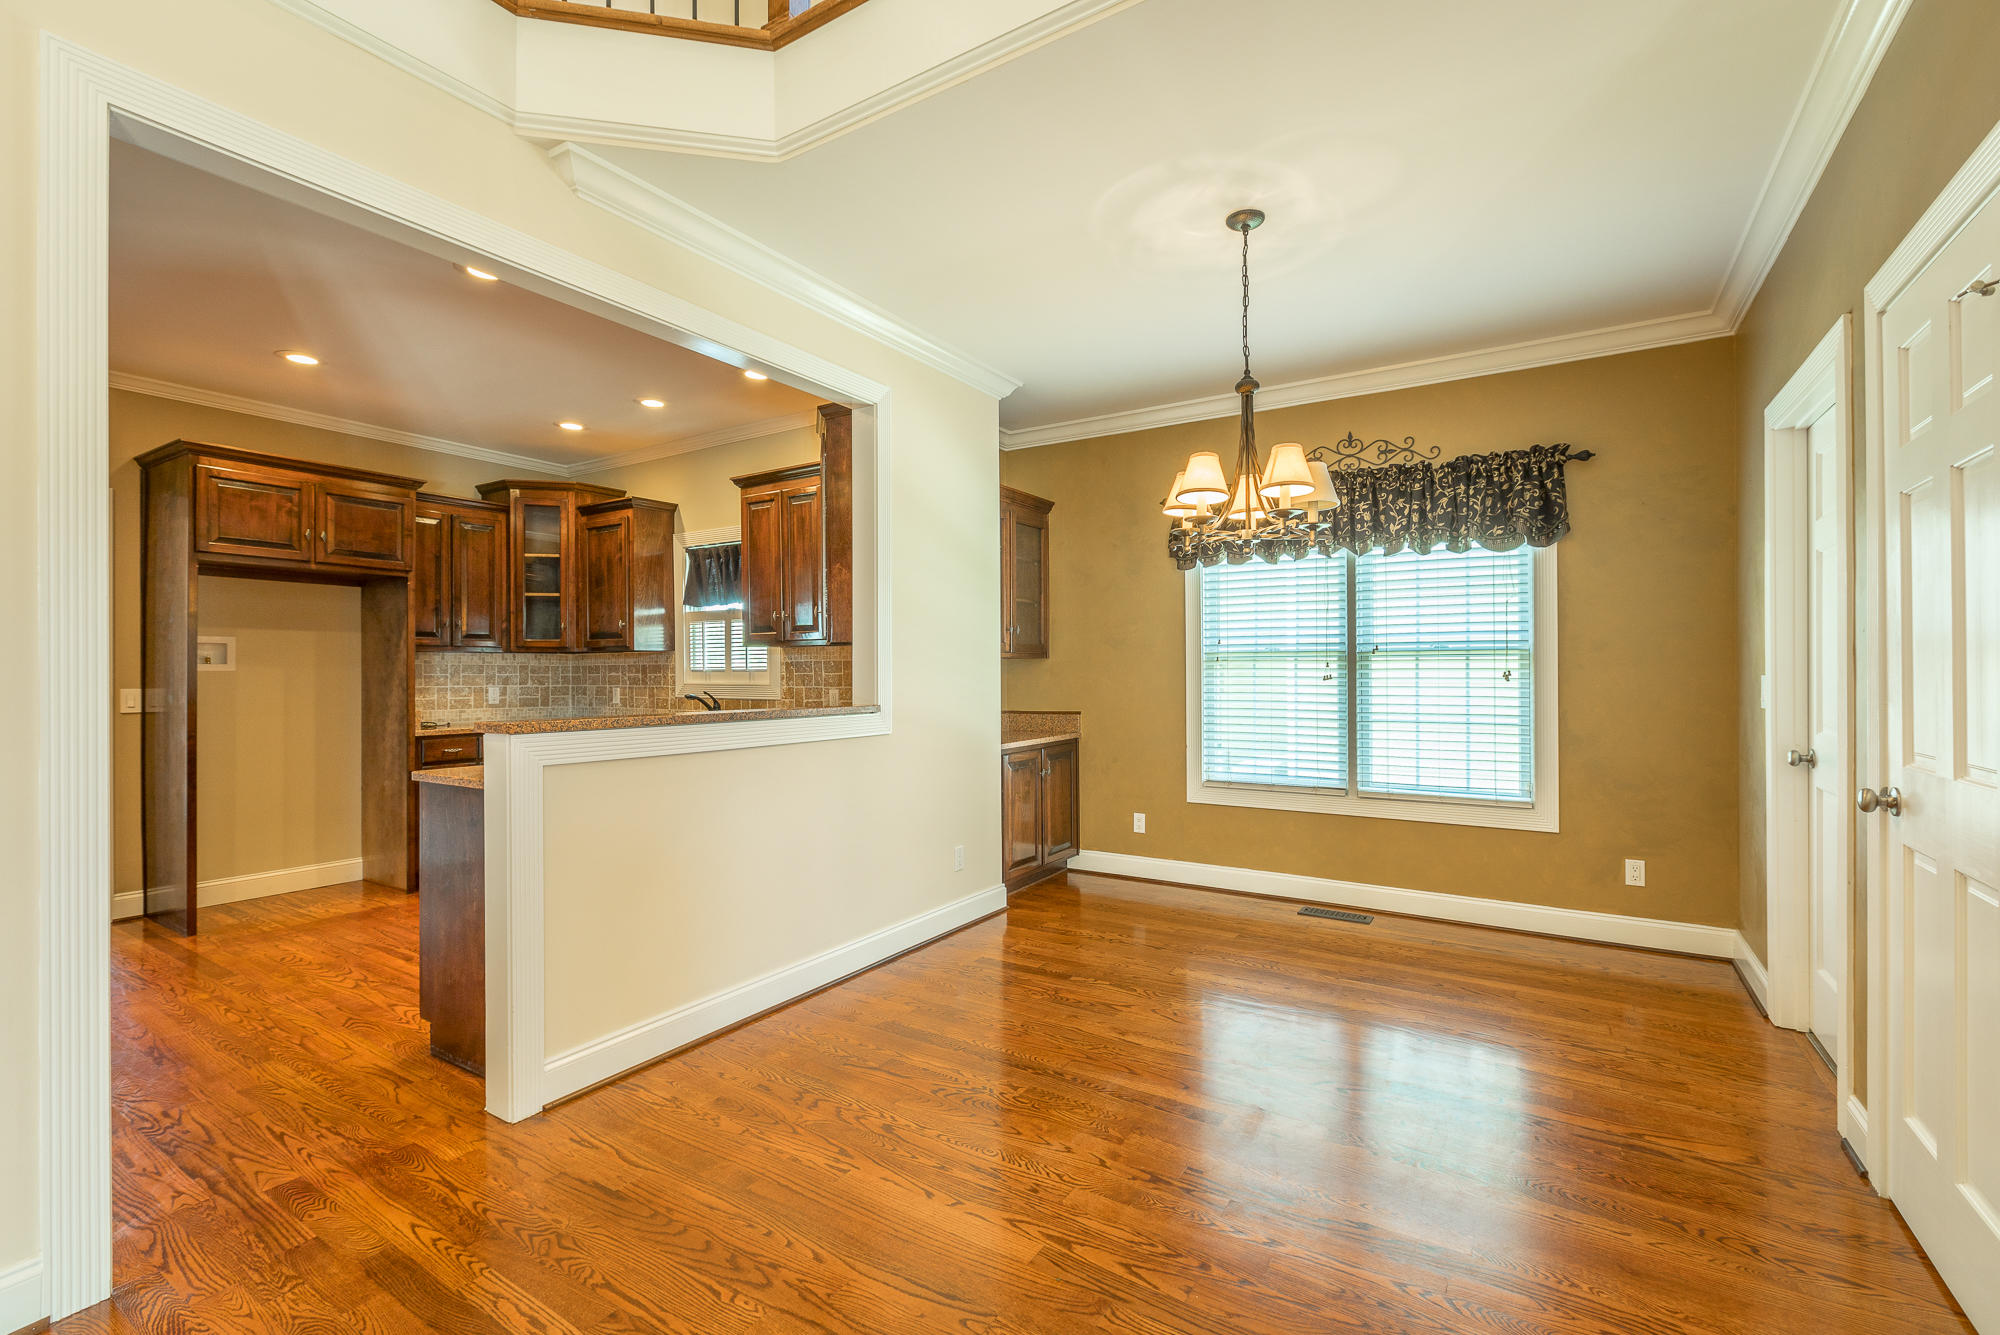 7626 Daybreak Cir, Ooltewah, TN 37363